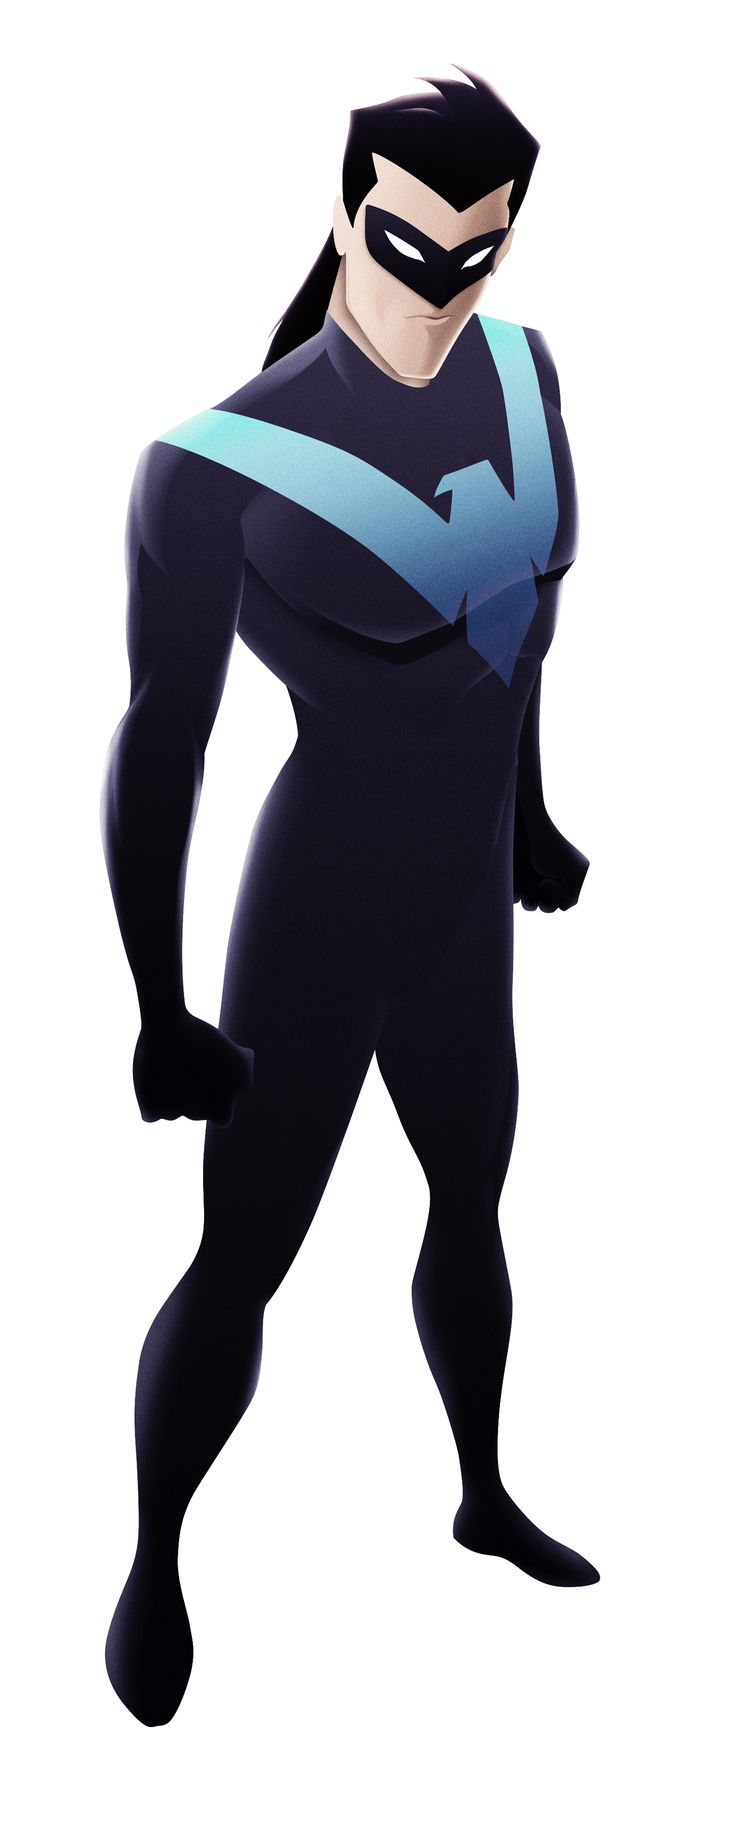 NIGHTWING - Bruce Timm Tribute on Behance